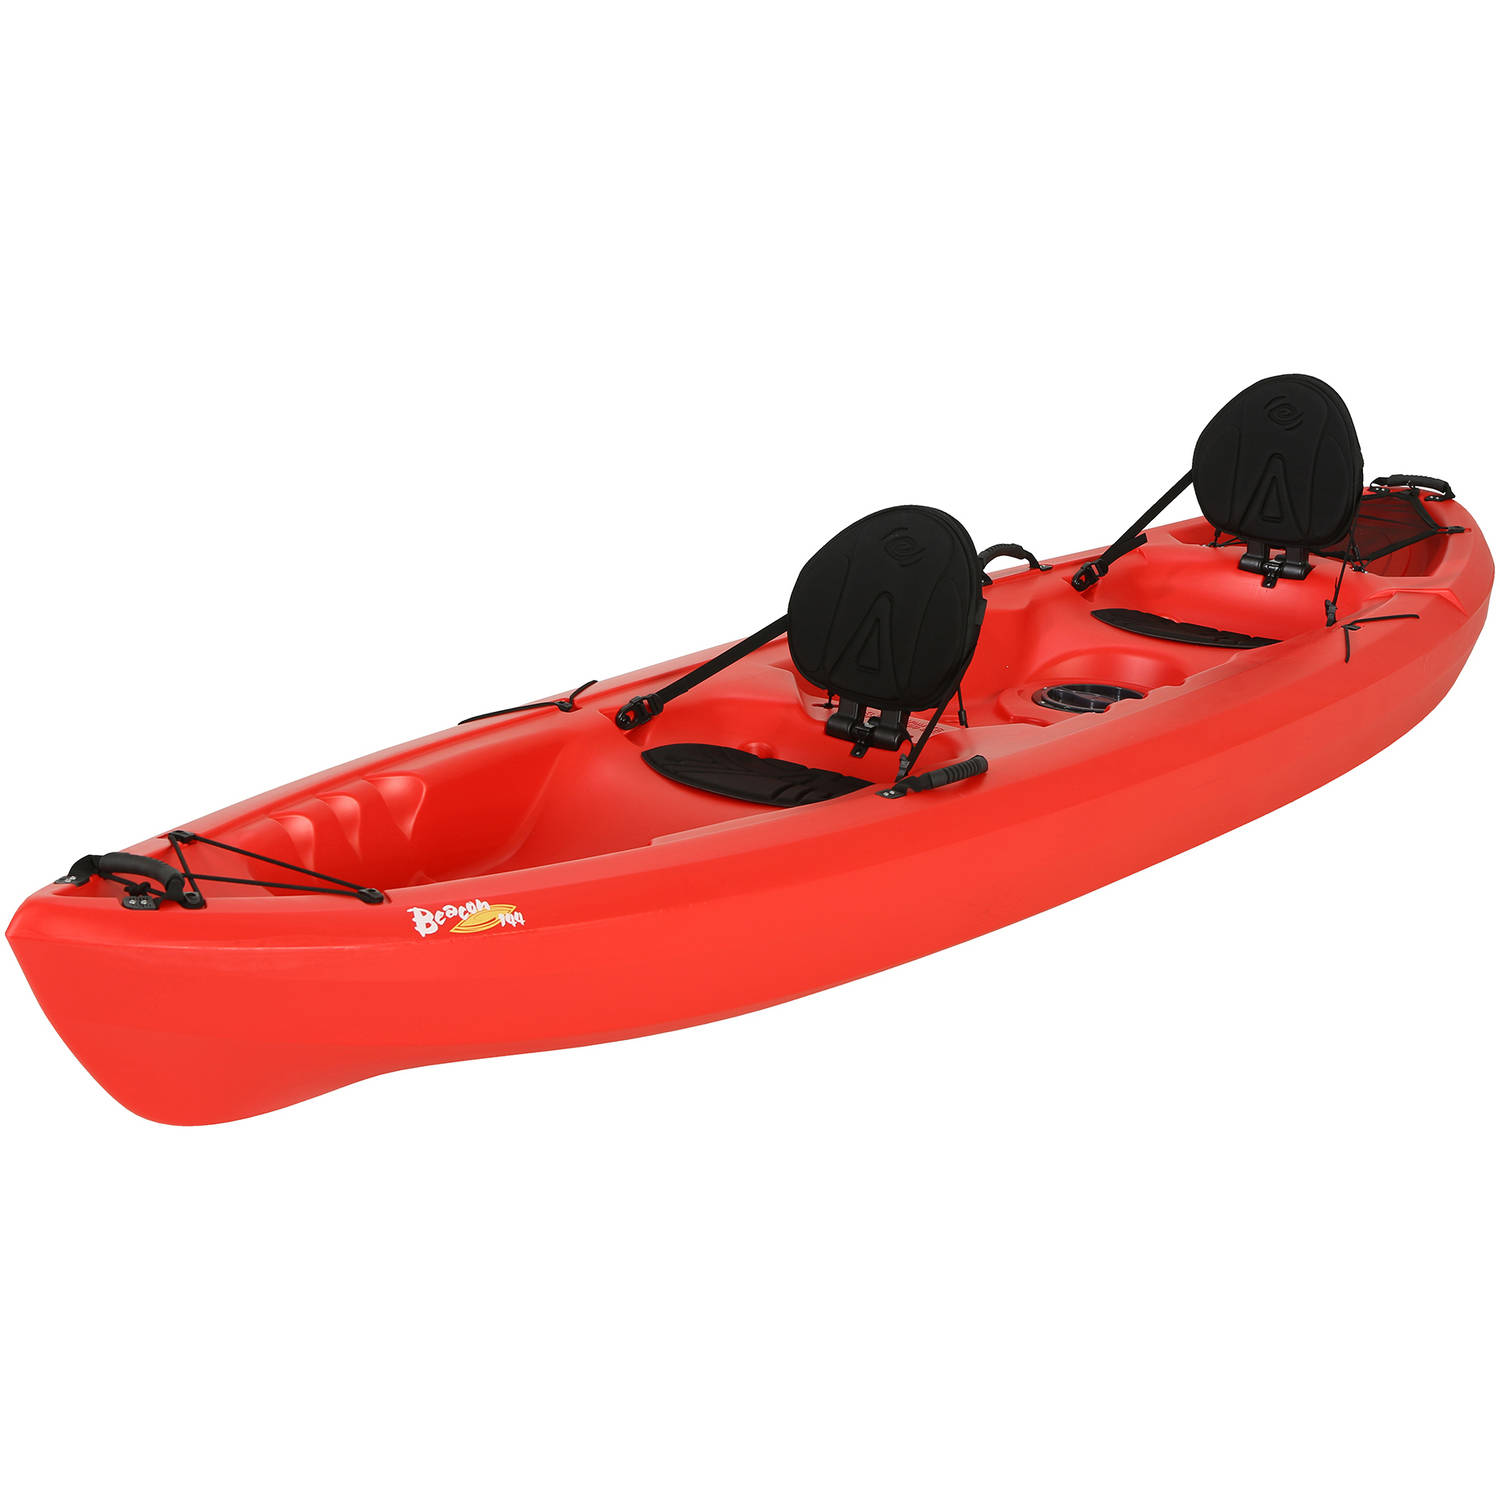 Click here to buy Lifetime 12' Beacon Sit On Top Tandem Kayak, Red, 90620 by Lifetime Products.